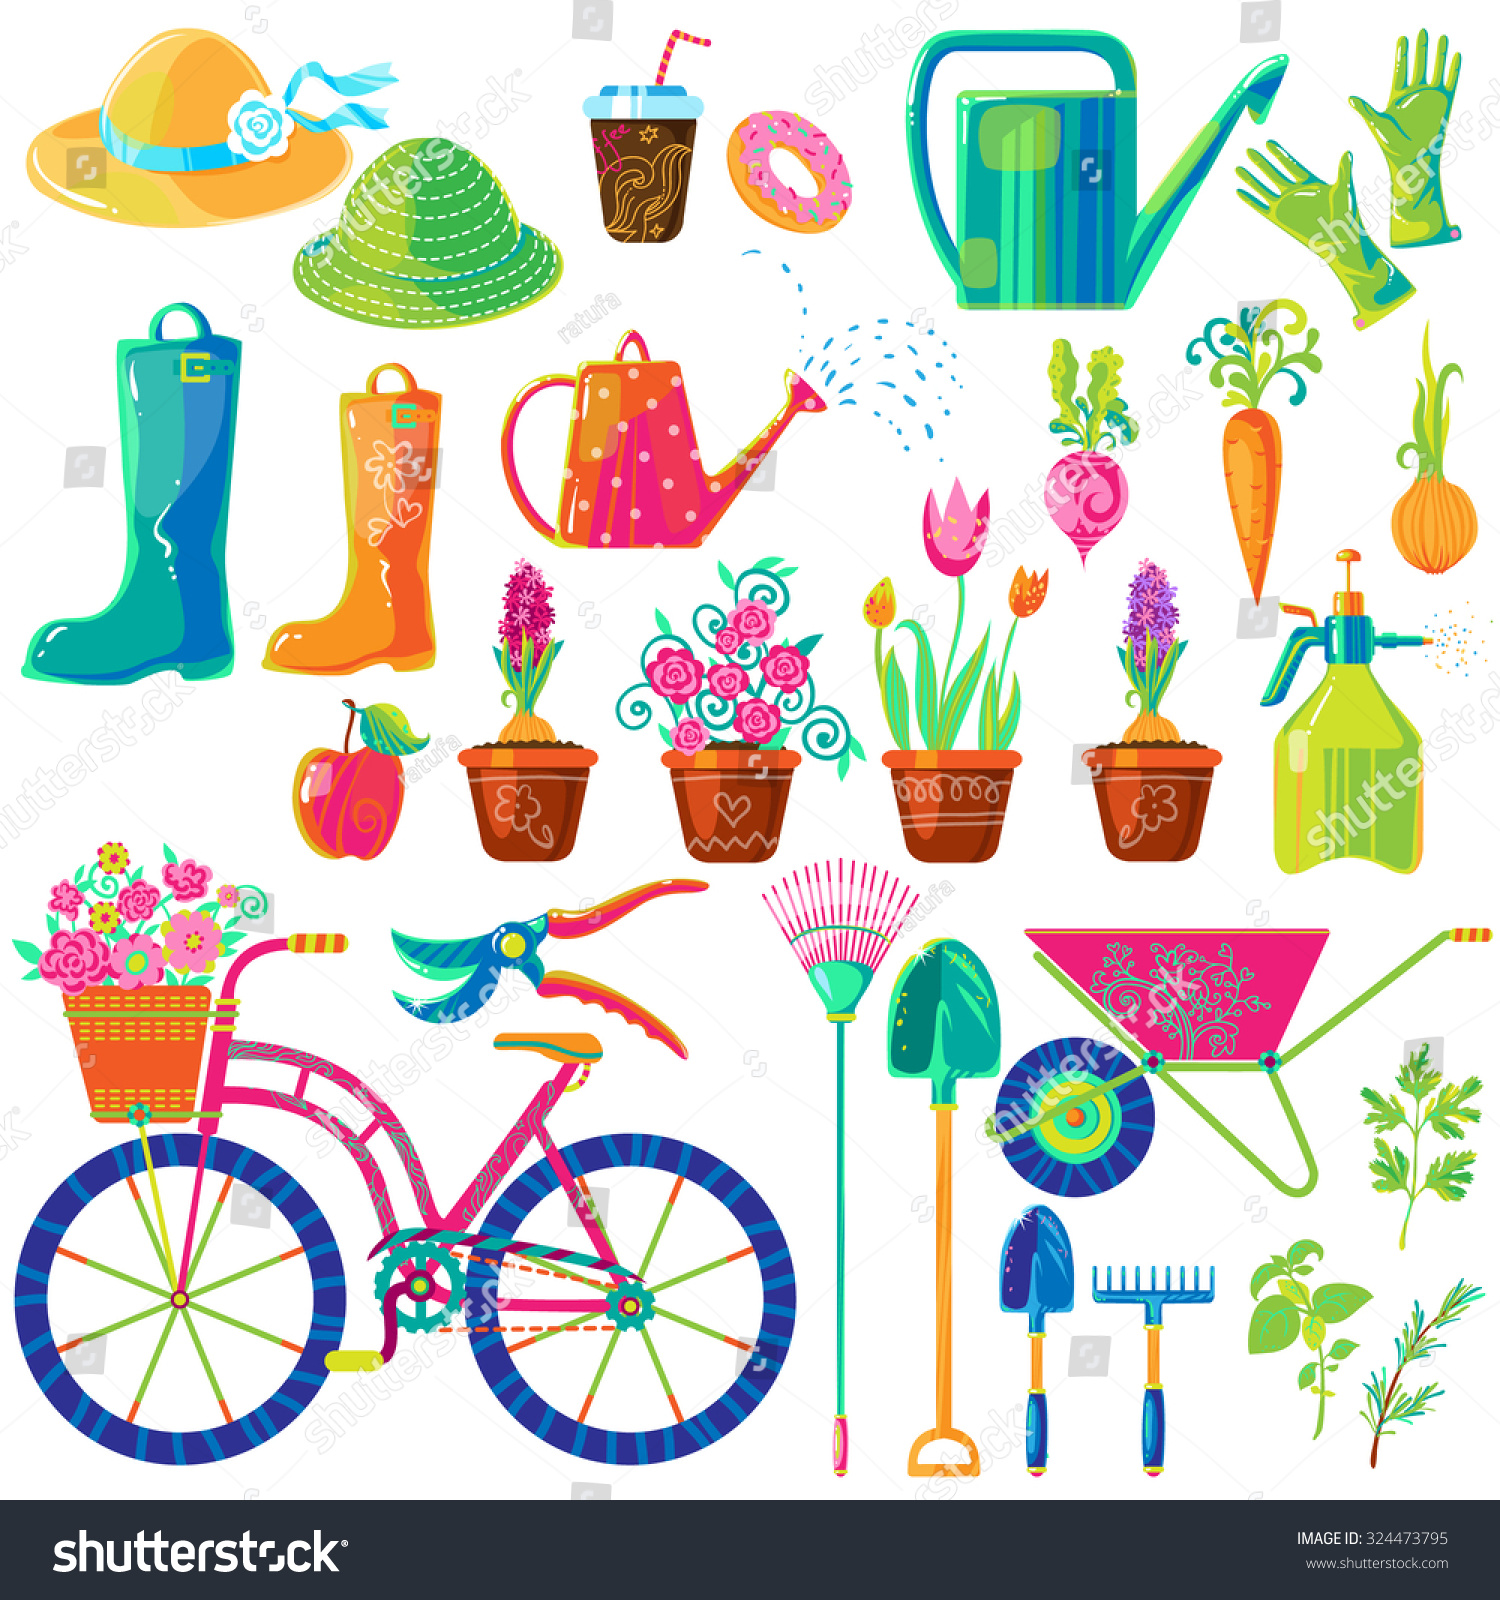 Vector Set Of Cute Funny Colorful Gardening Tools, Clothes, Vegetables,  Herbs And Cute